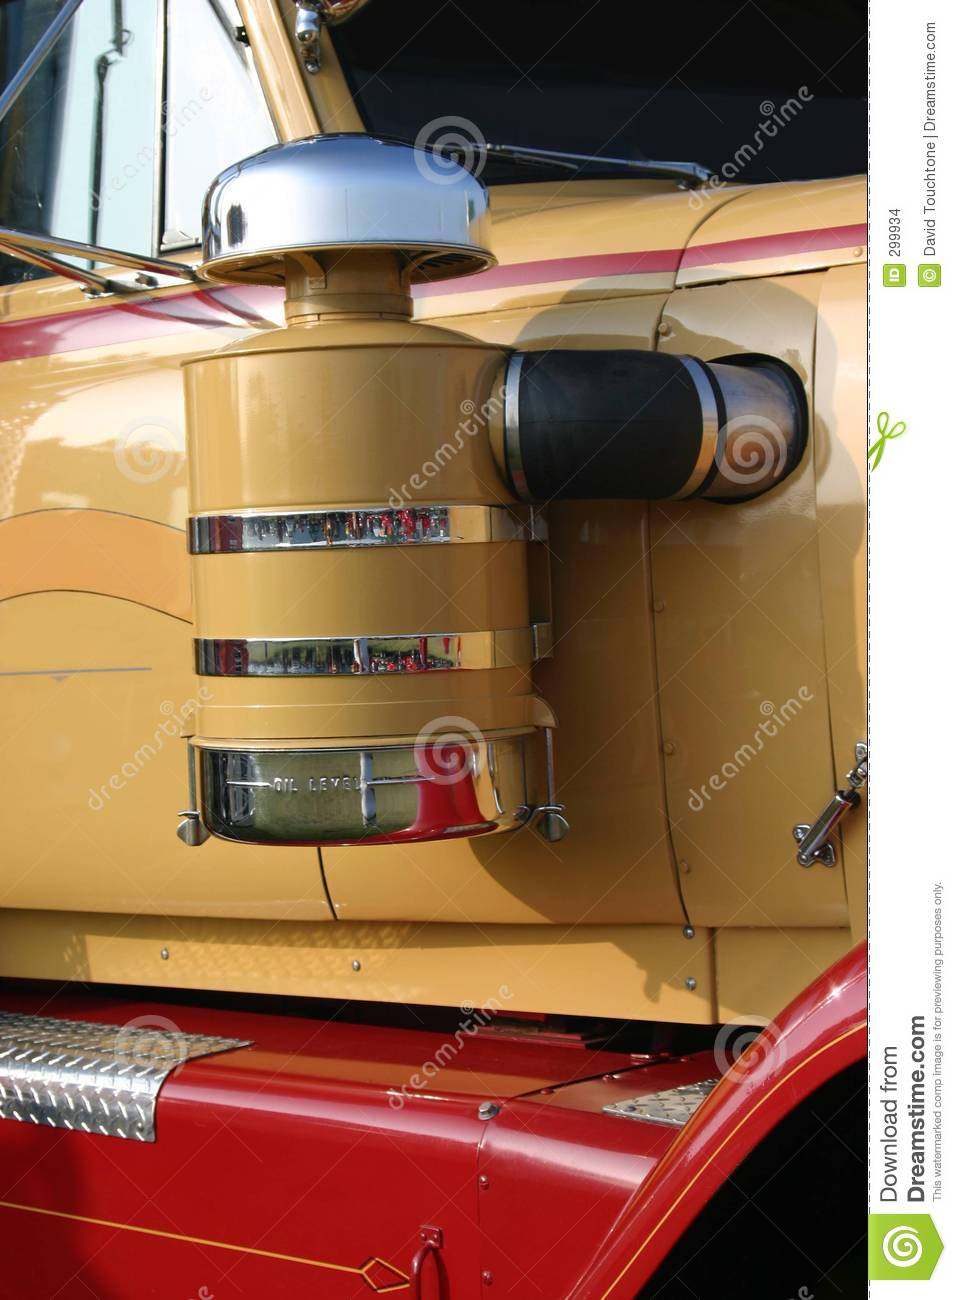 Semi Air Breather : Truck air cleaner stock photo image of windshield